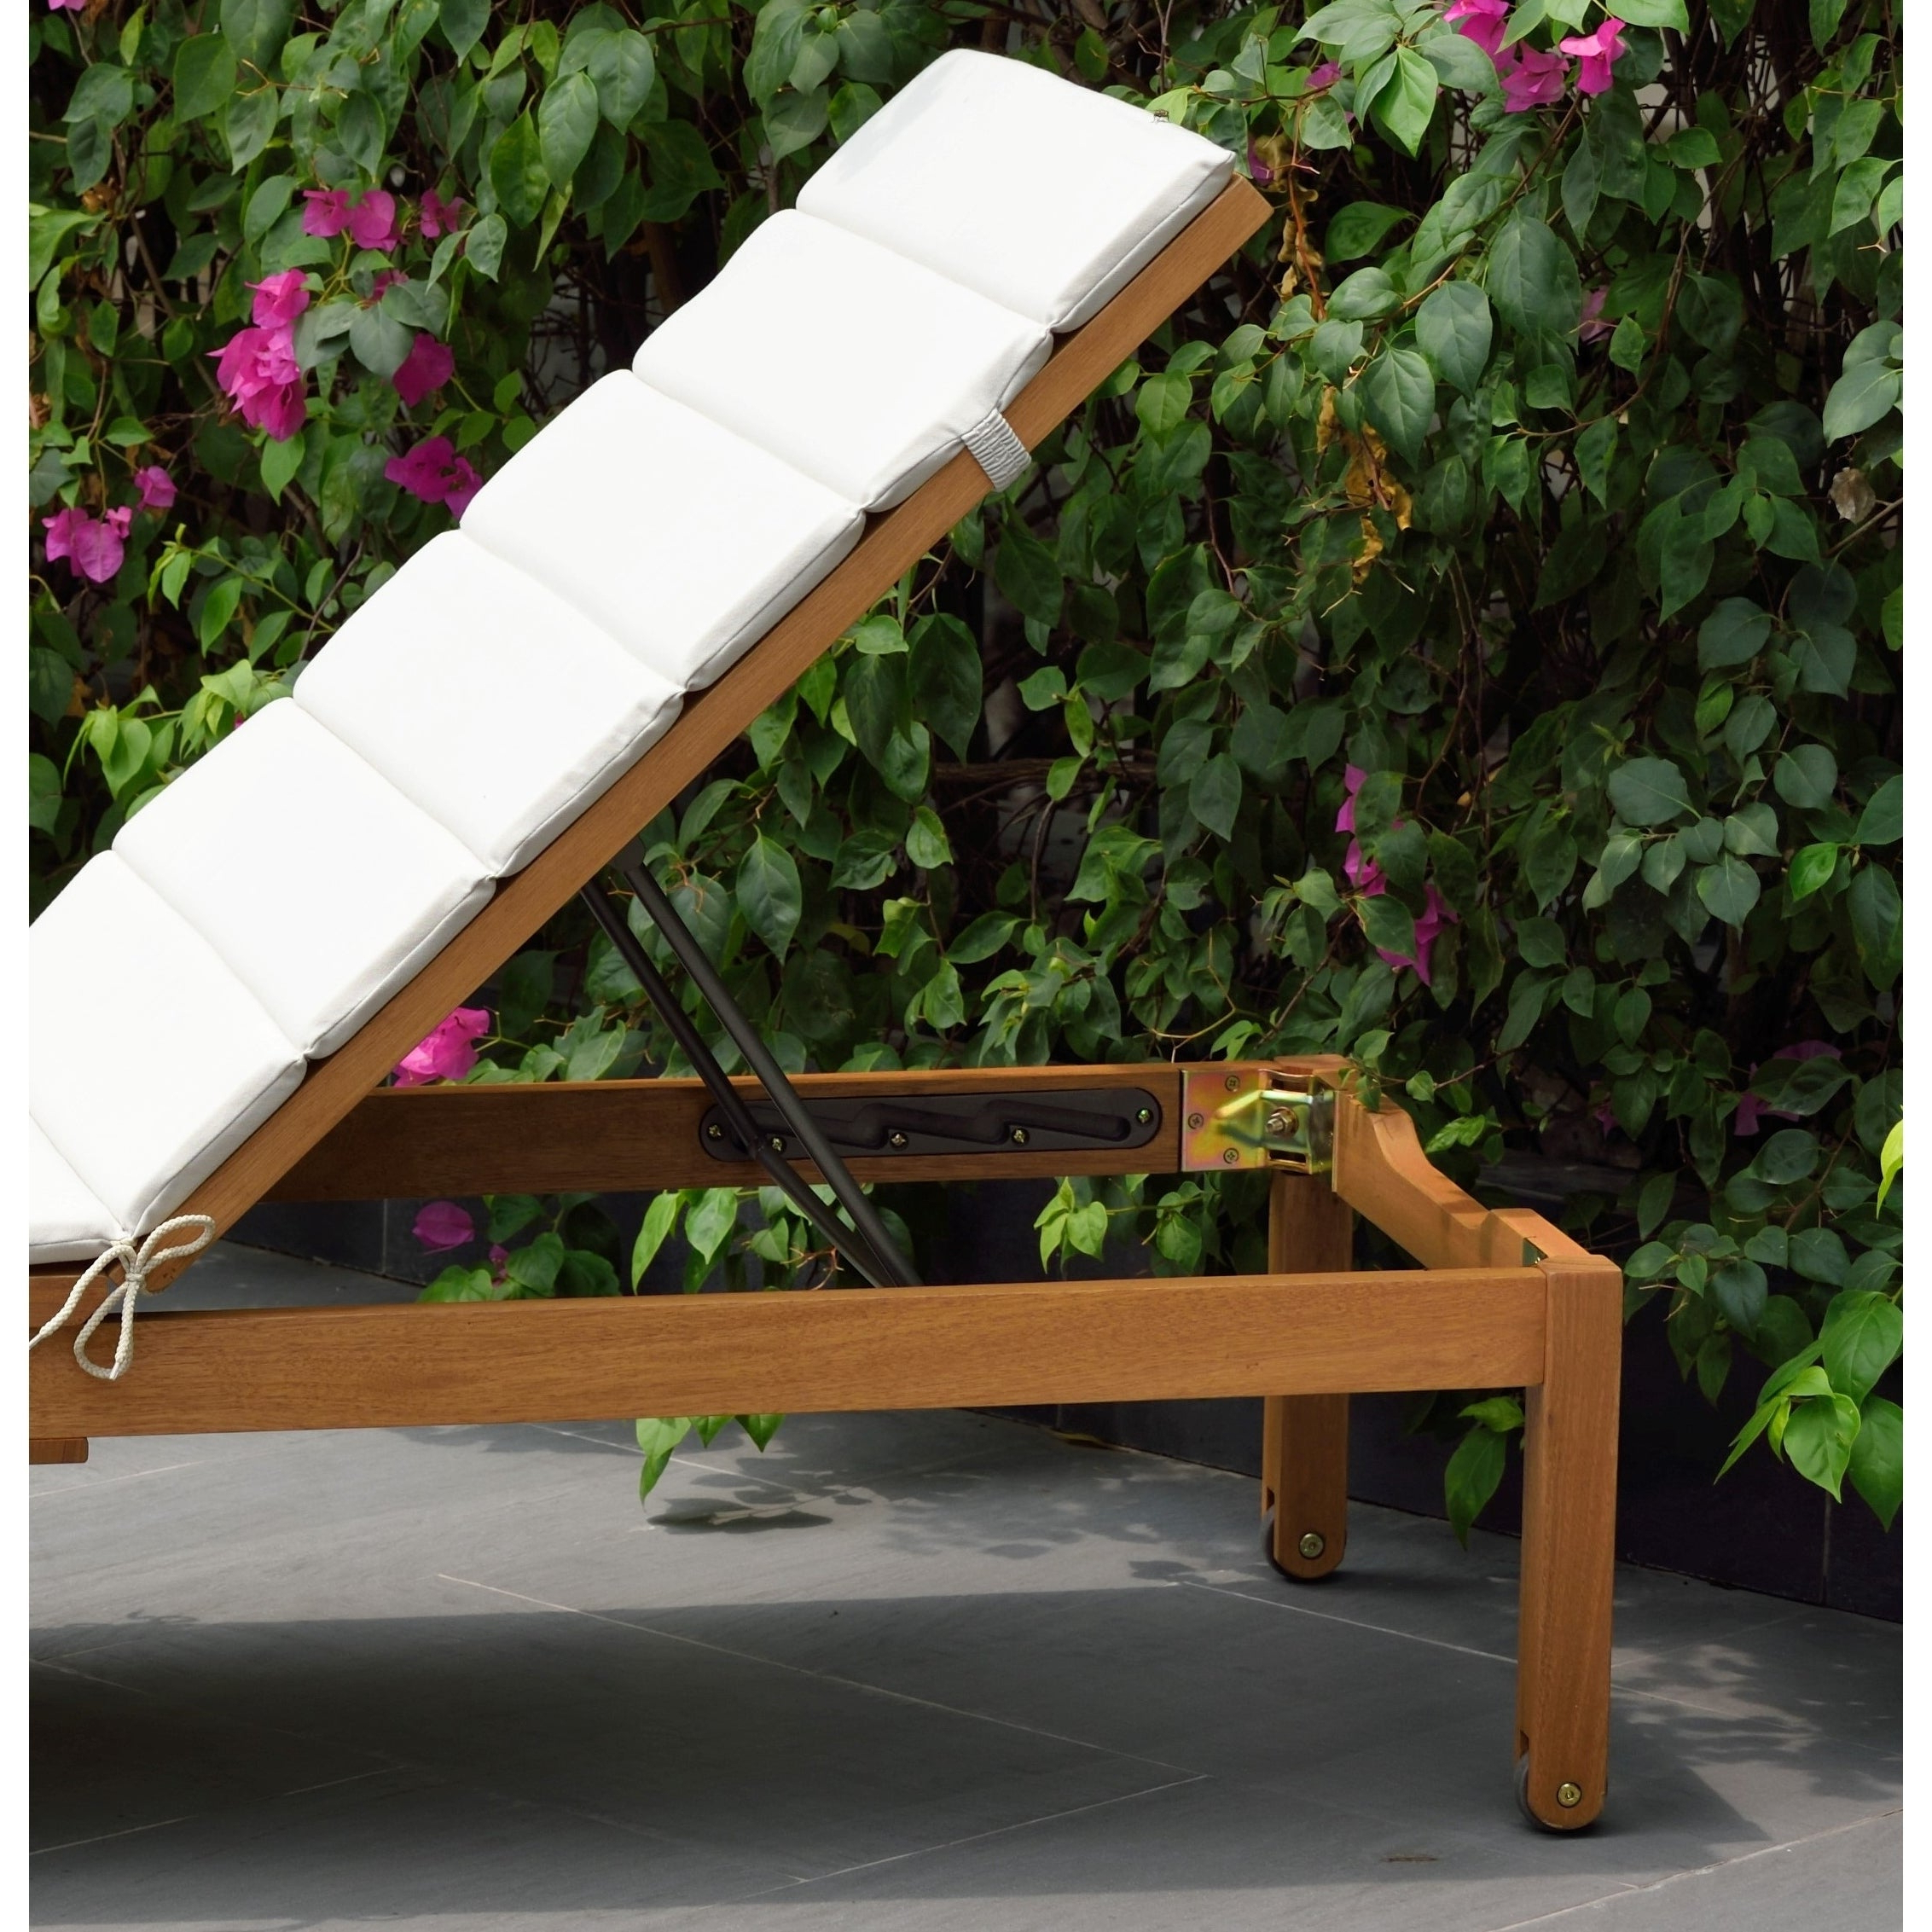 Eucalyptus Teak Finish Outdoor Chaise Loungers With Cushion Pertaining To Famous Amazonia Katia Eucalyptus/teak Finish Outdoor Chaise Lounger With Grey Cushion (View 6 of 25)